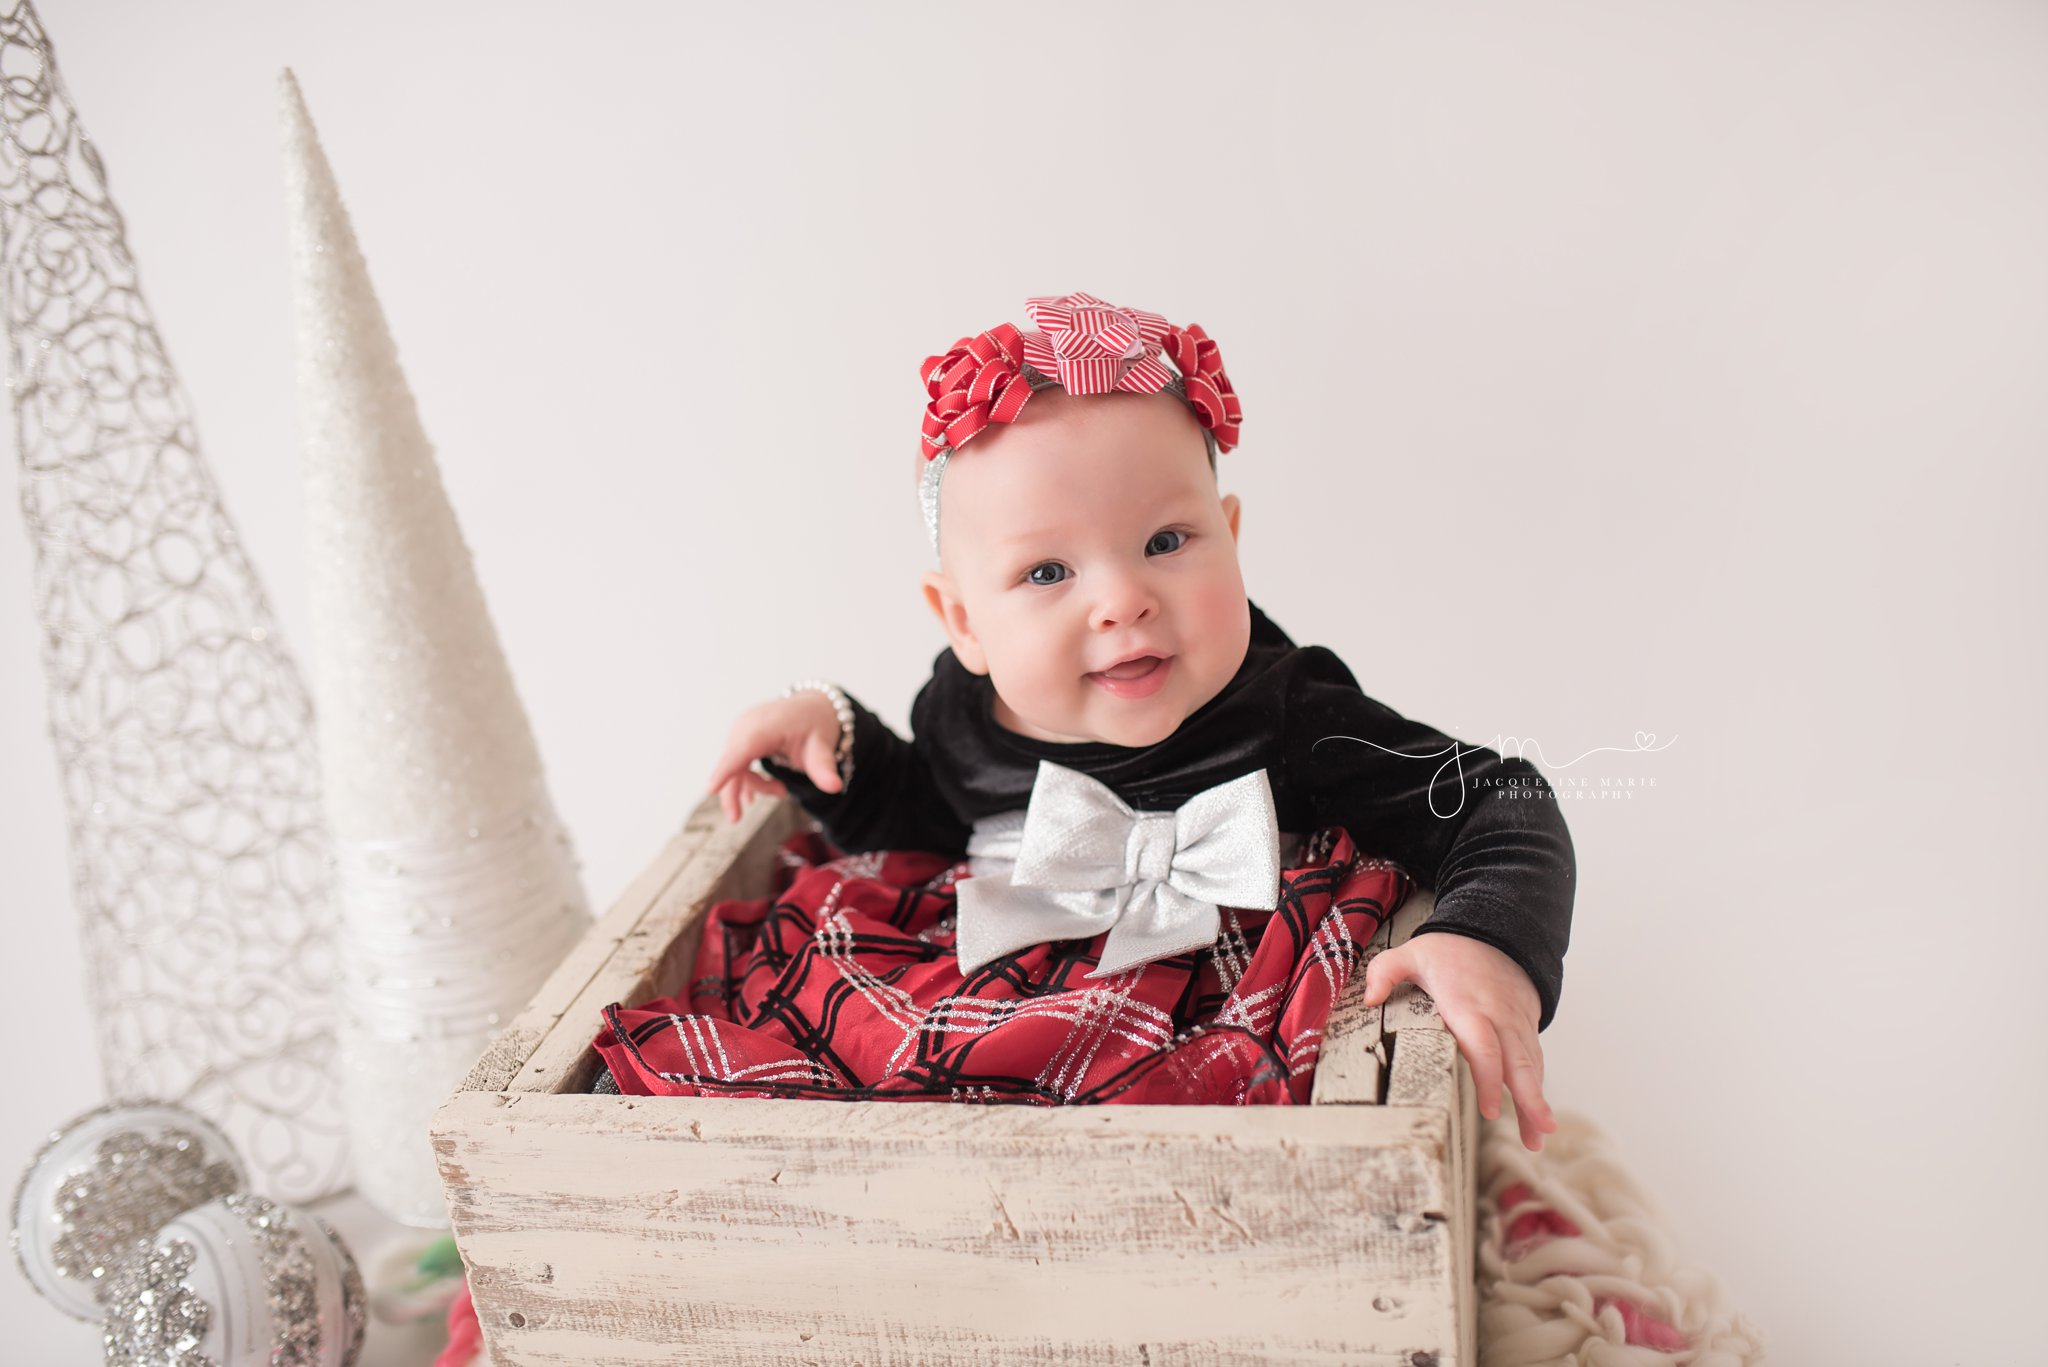 Columbus Ohio newborn and baby photographer features baby sitting in wooden crate for Christmas portrait at Jacqueline Marie Photography studio